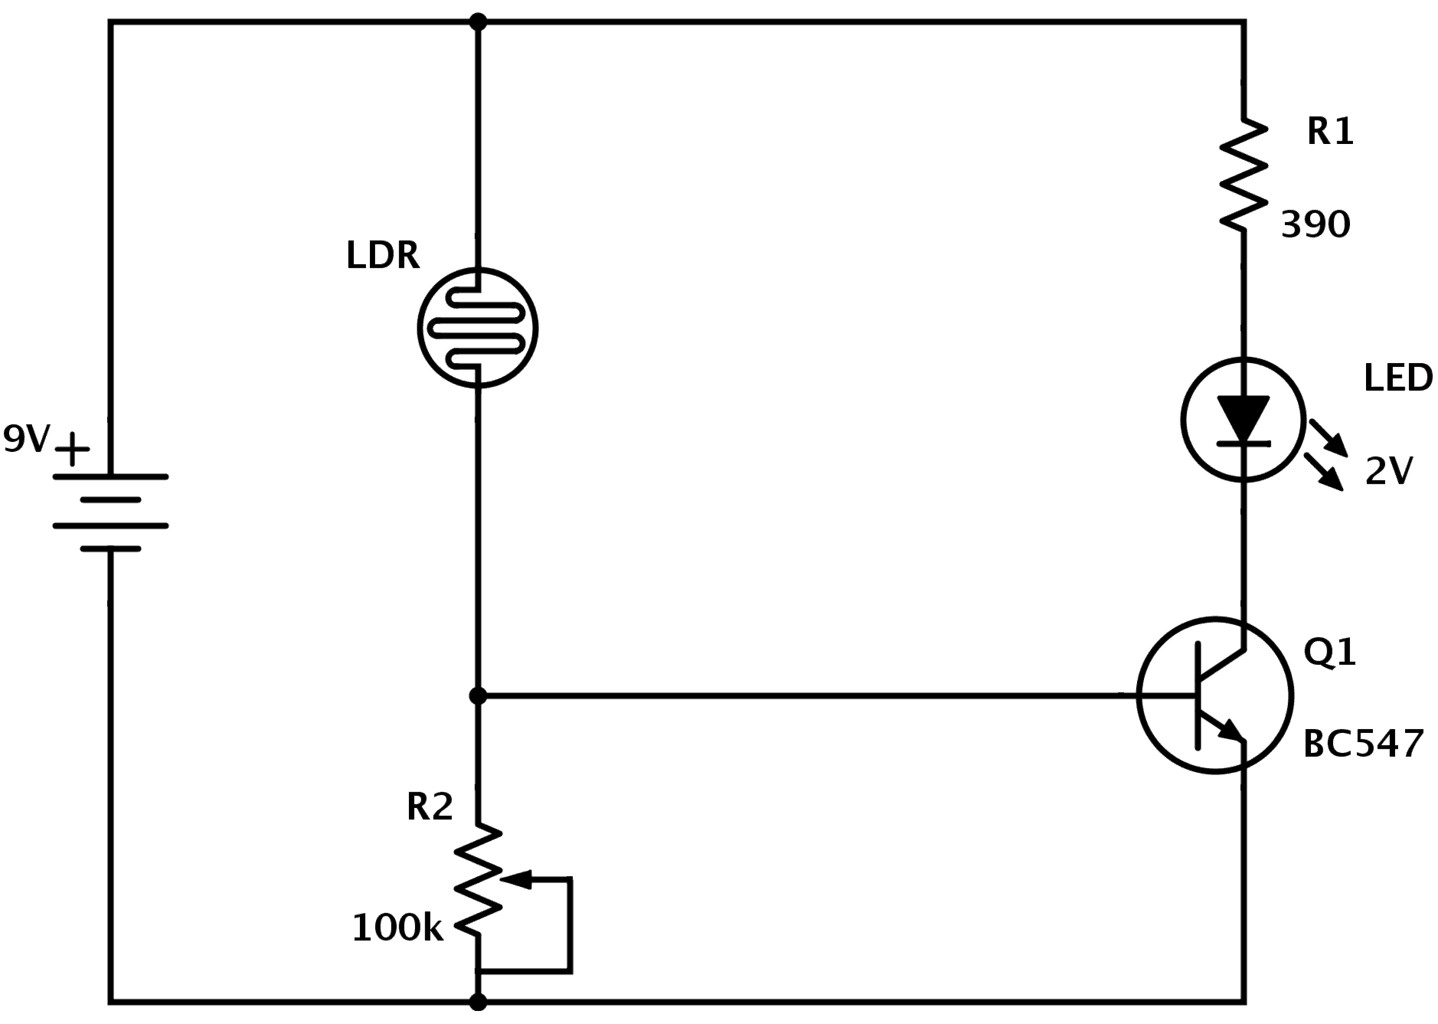 Circuit Diagram How To Read And Understand Any Schematic